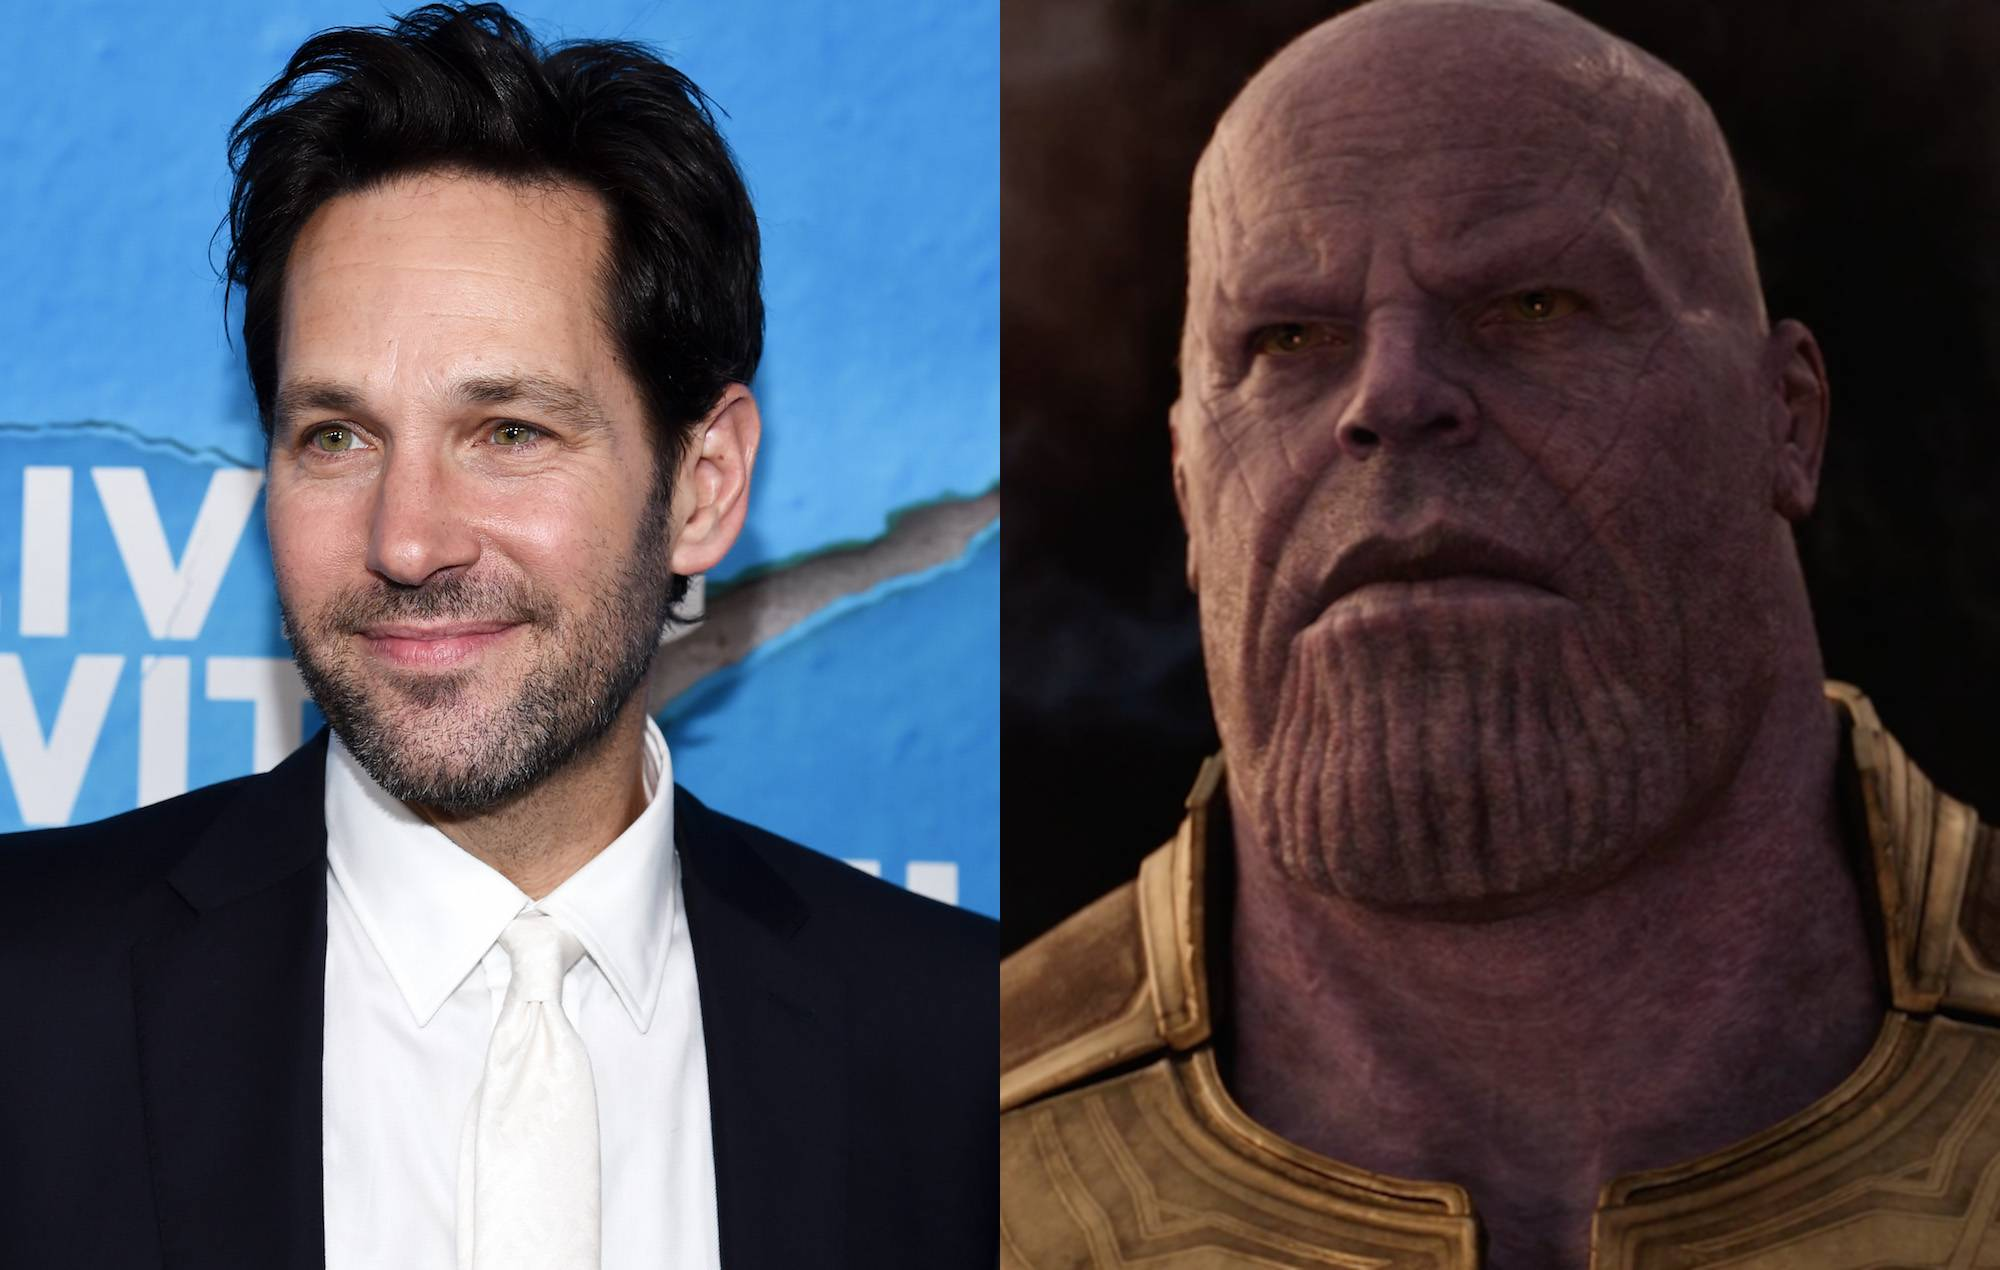 Paul Rudd upset that Thanos/Ant-Man butt theory didn't come true in 'Avengers: Endgame'